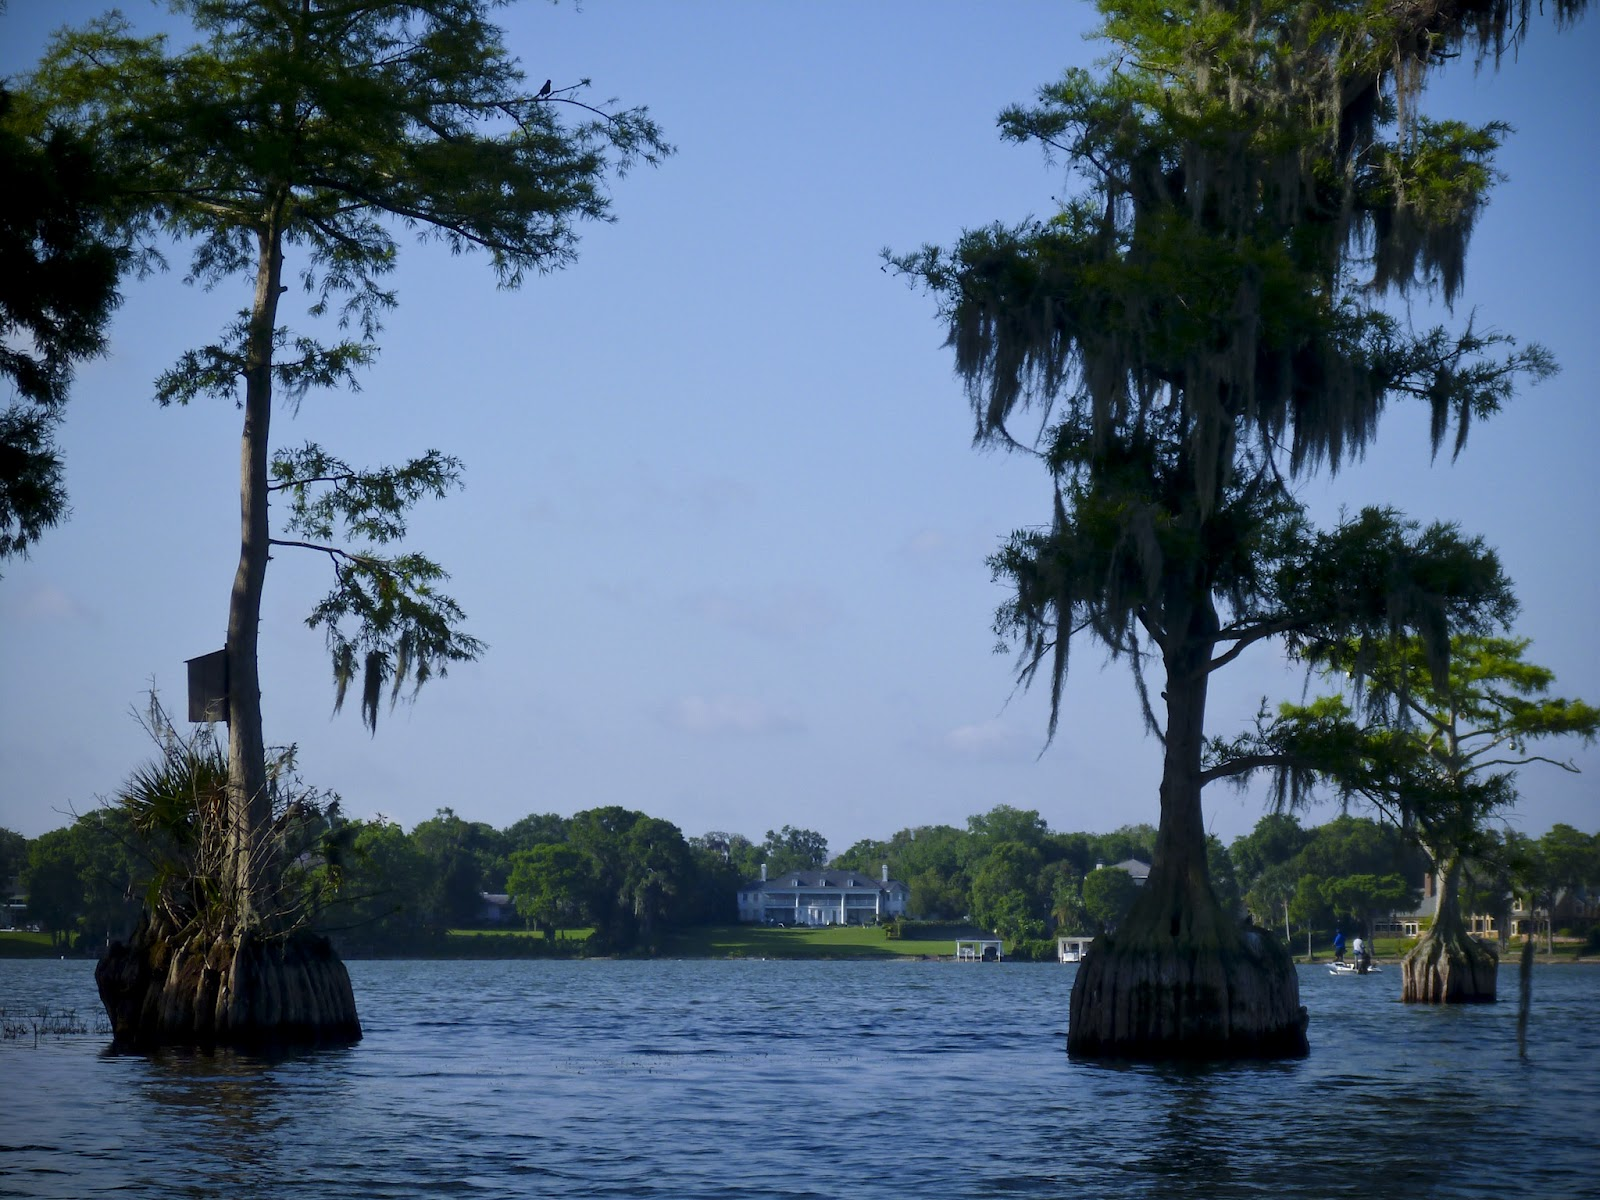 Old Florida: What to make of Lake Maitland